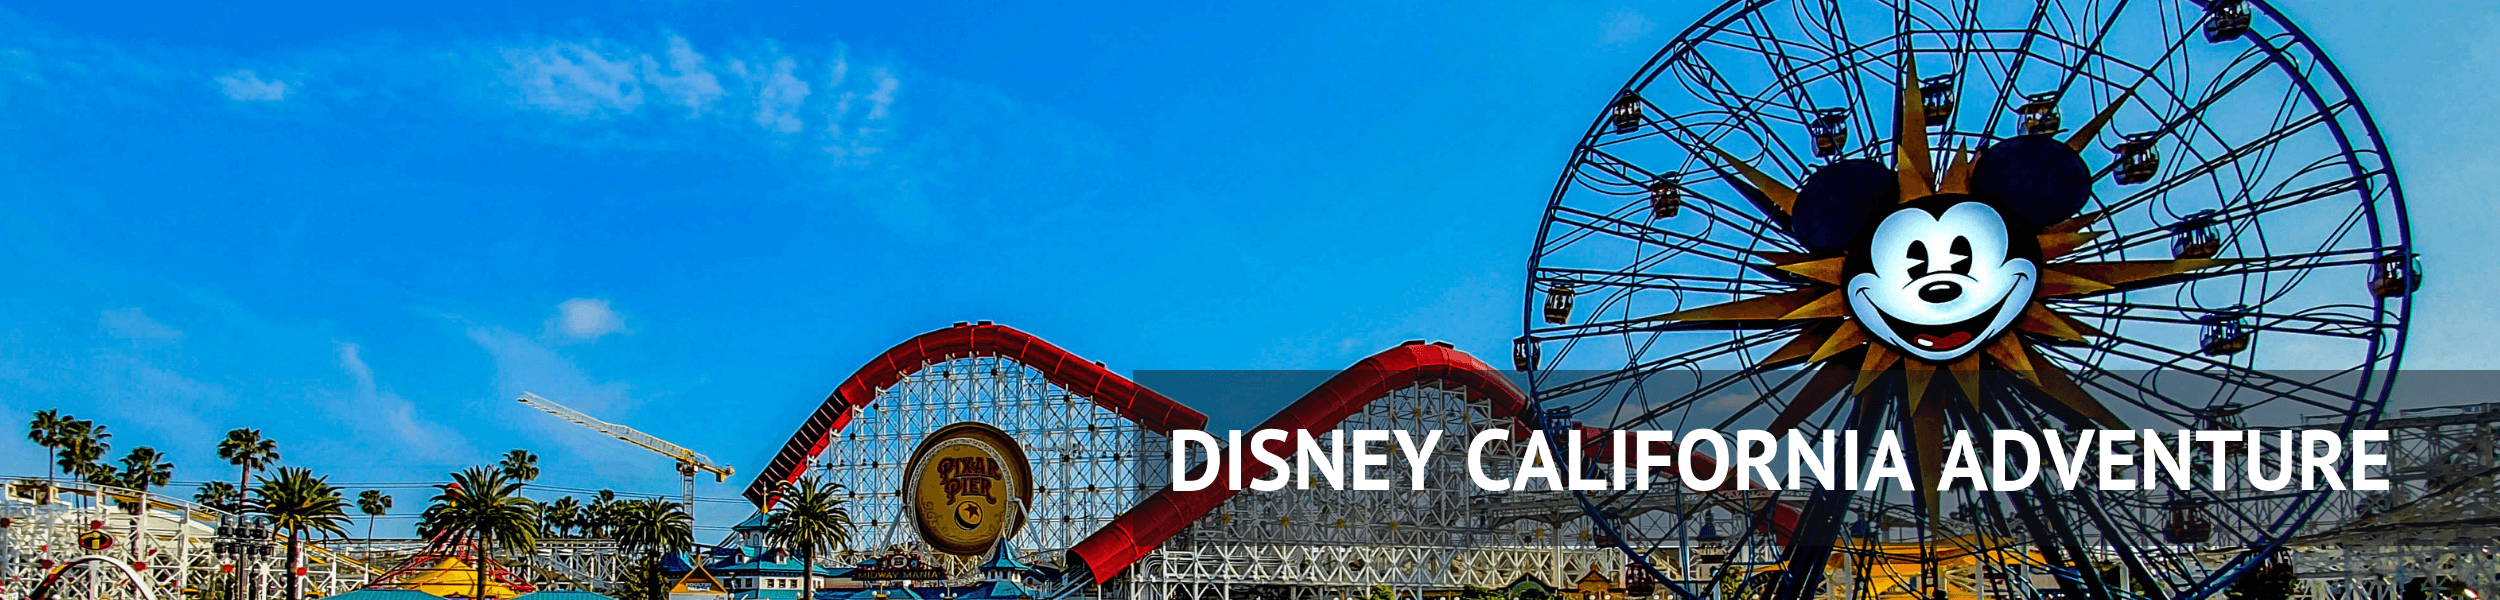 Disney California Adventure Header